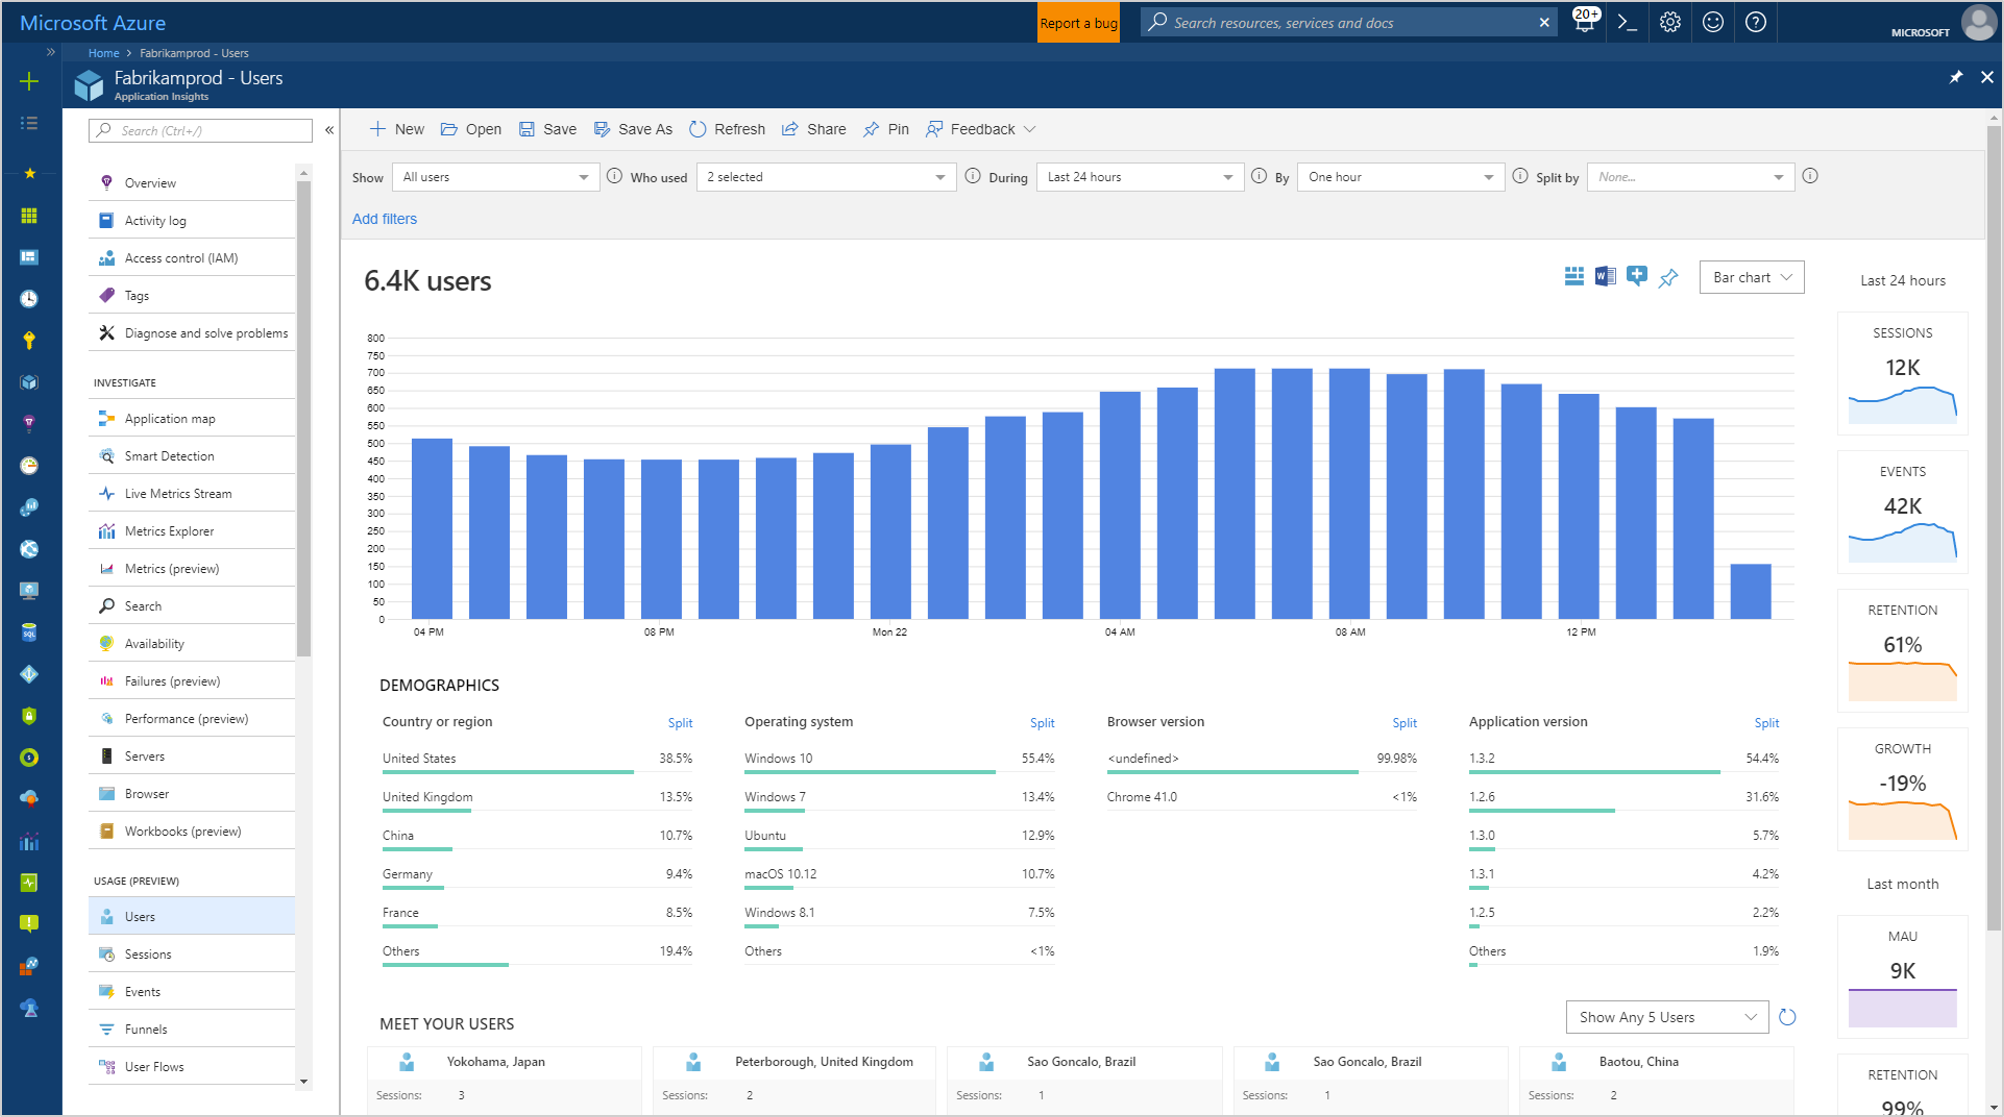 User session and event analysis in Azure Application Insights